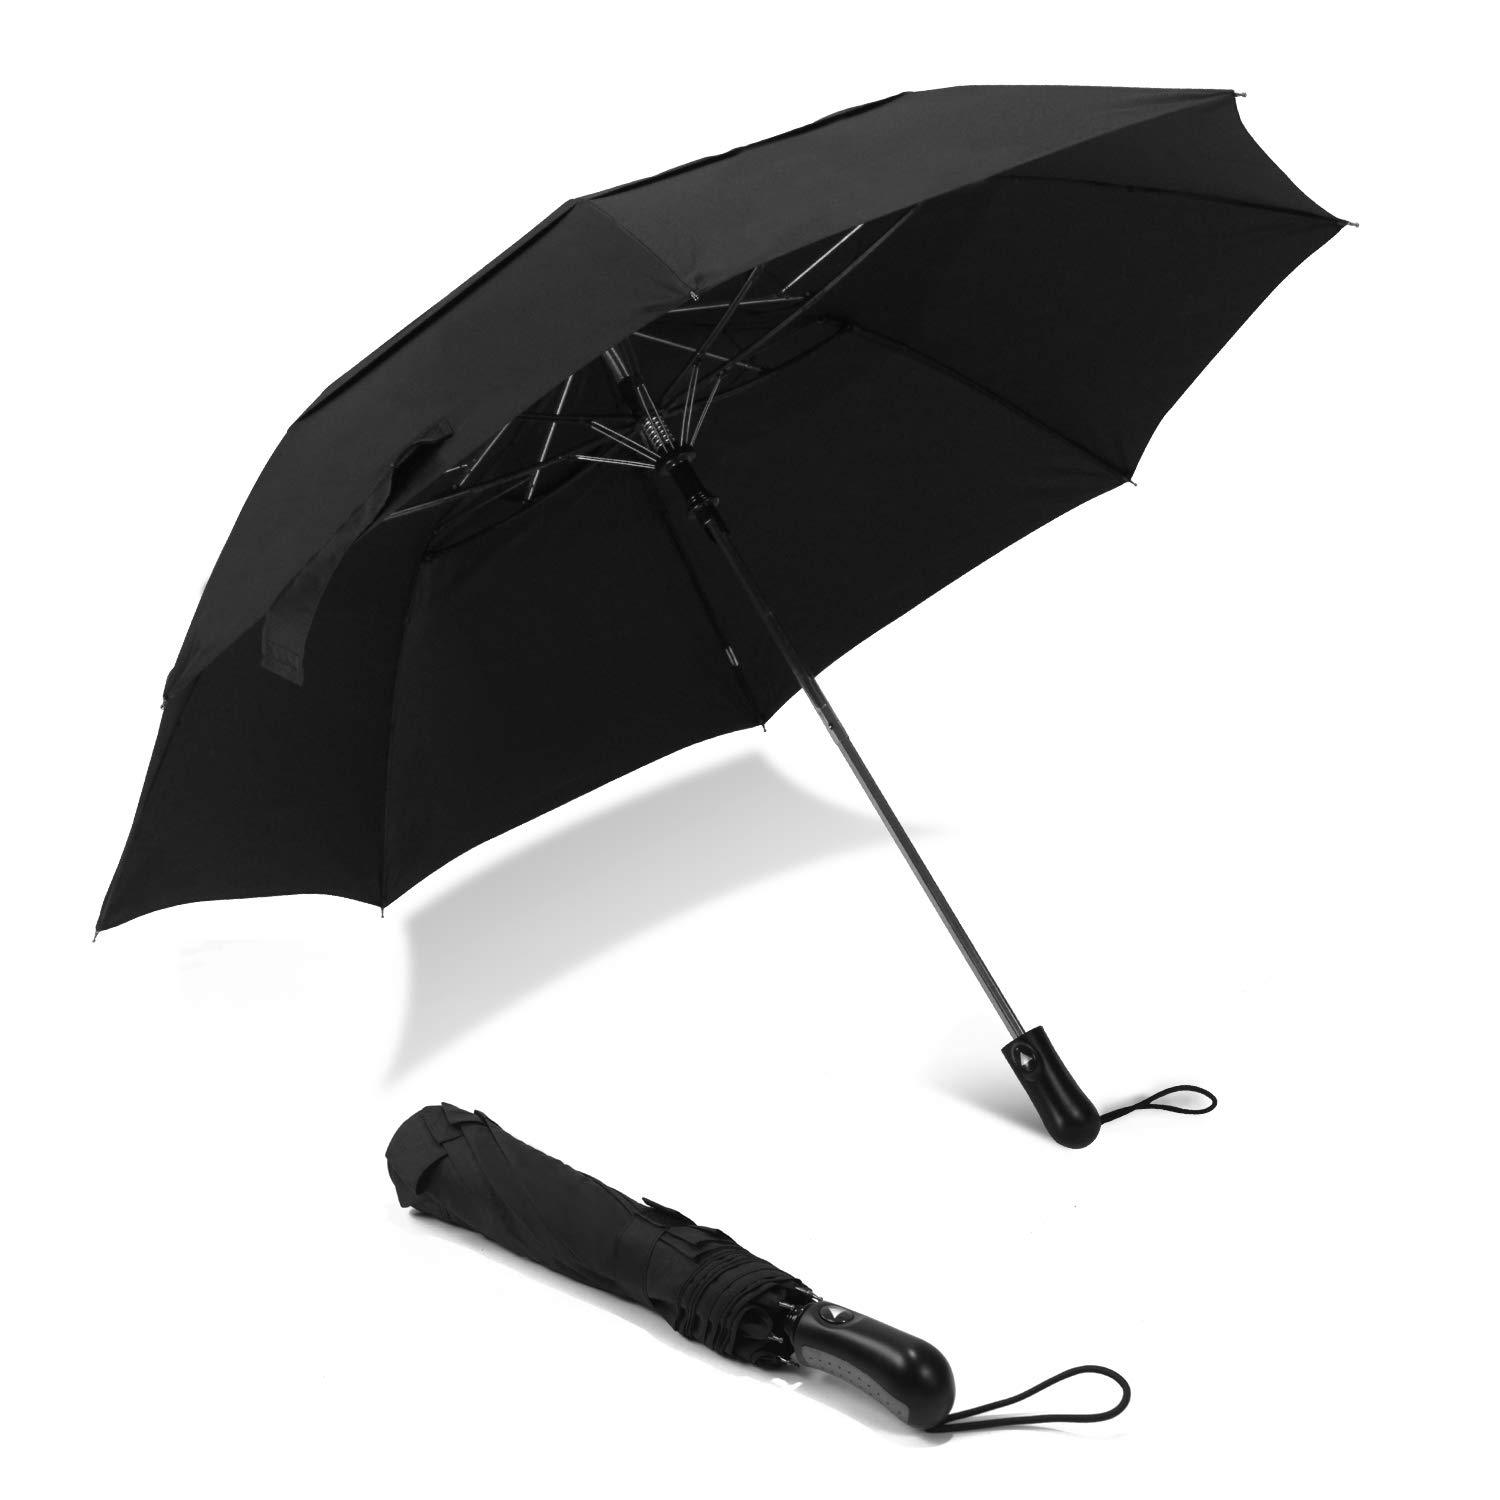 Lejorain Sturdy Folding Golf Umbrella 50inch Windproof Vented Double Canopy-Auto Open-Portable-for Men and Women by Lejorain